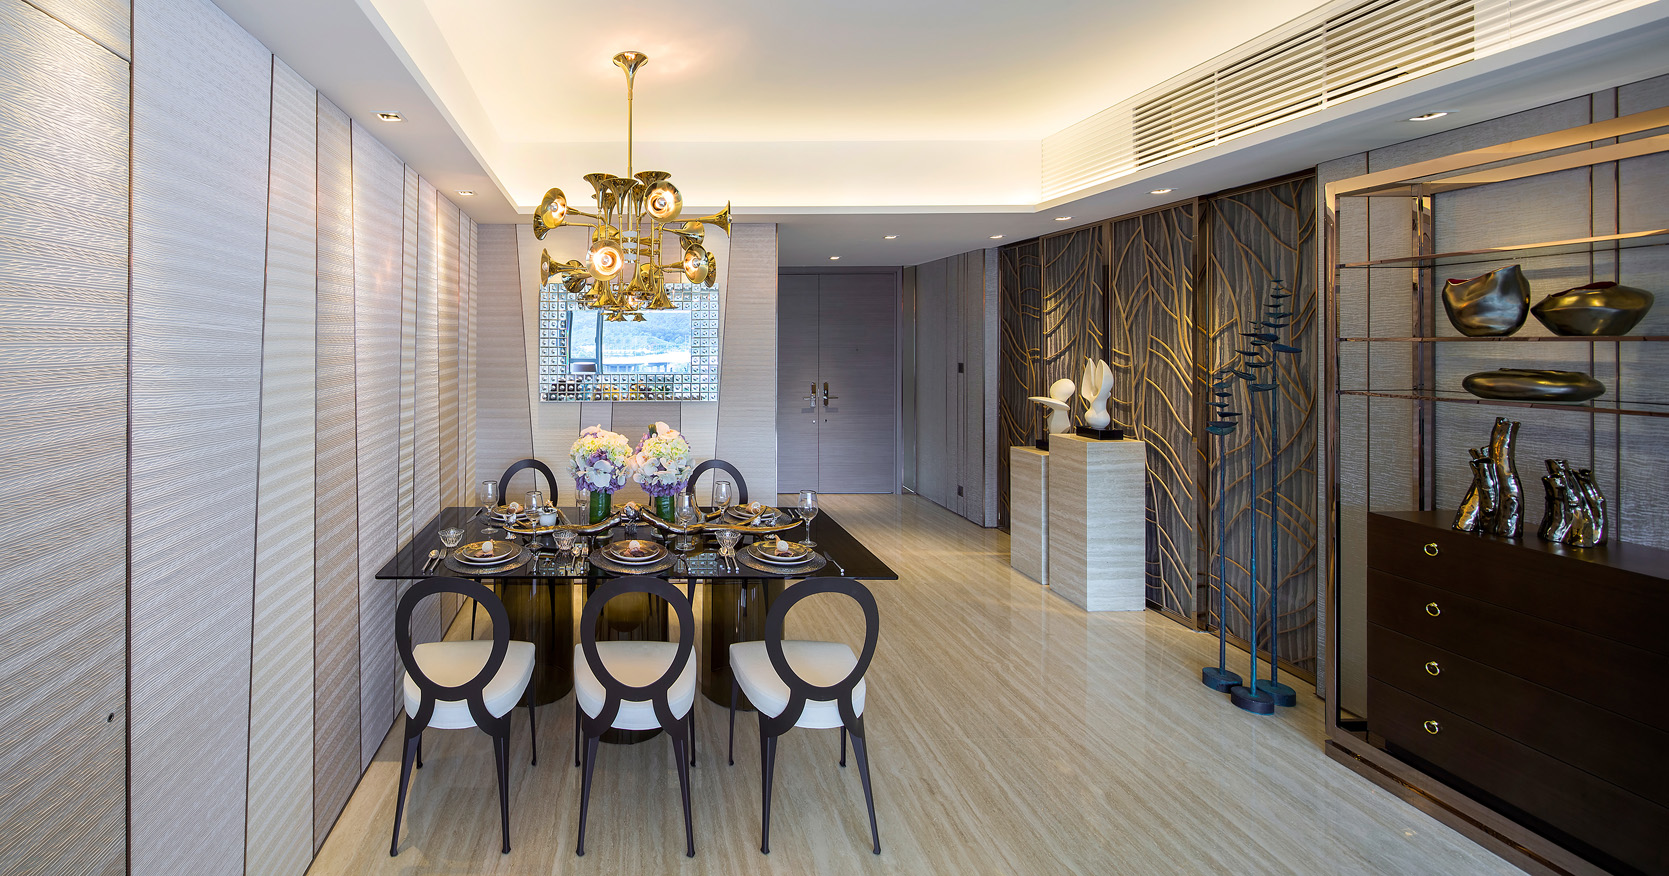 Dining room lighting ideas for a luxury interior francis sultana 3 Interiors by Francis Sultana You Should Get Inspired By Dining room lighting ideas Delightfull Botti francis sultana 3 Interiors by Francis Sultana You Should Get Inspired By Dining room lighting ideas Delightfull Botti